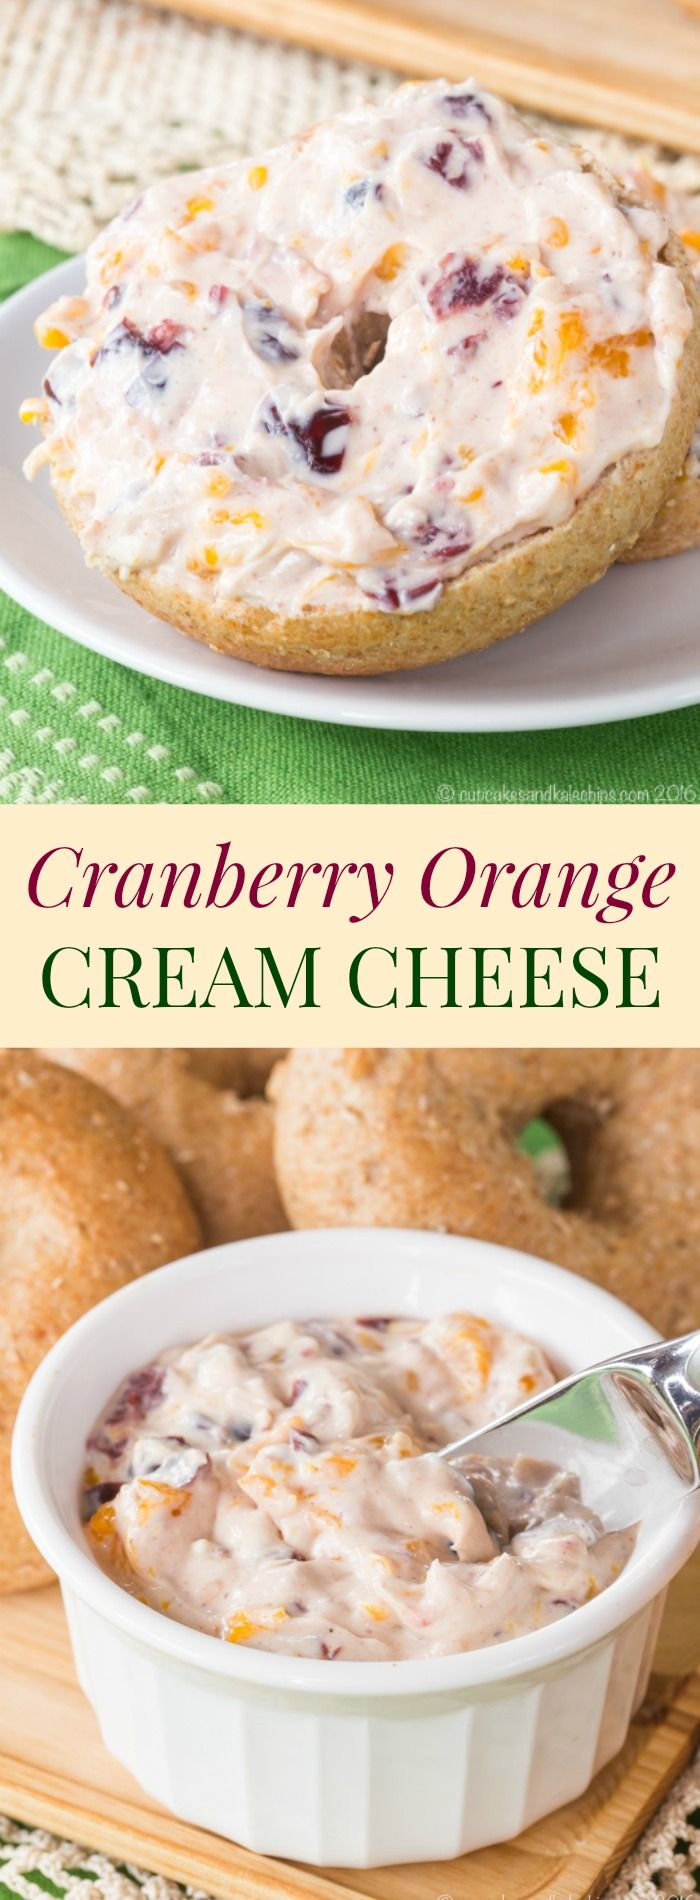 Cranberry Orange Cream Cheese - an easy spread for bagels or graham crackers, dip for apples or pears, or to stuff into dates. Made with @DoleSunshine #ad